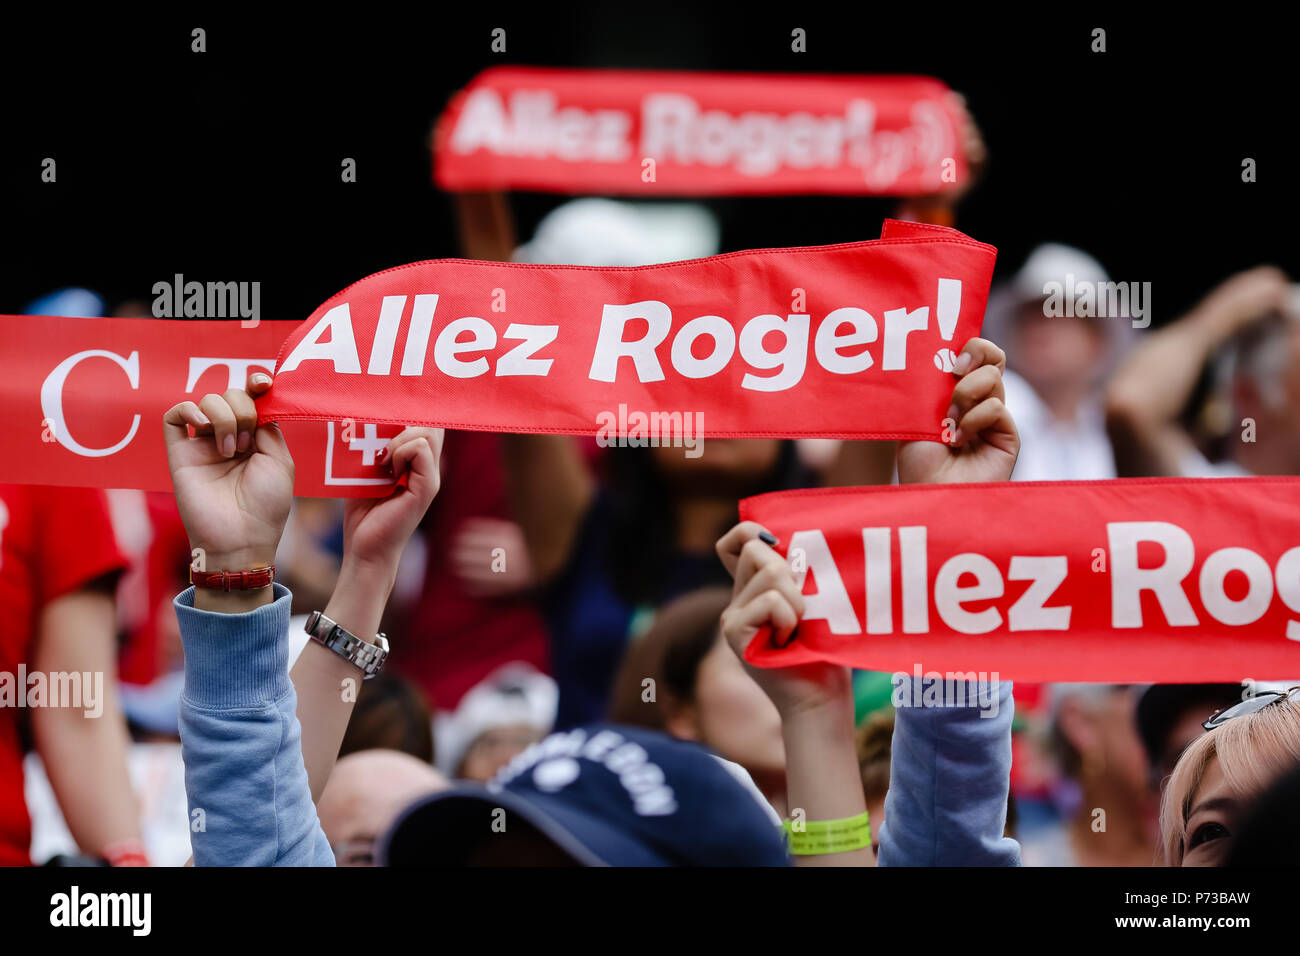 London, UK, 4th July 2018: Fans from defending champion Roger Federer cheer at day 3 at the Wimbledon Tennis Championships 2018 at the All England Lawn Tennis and Croquet Club in London. Credit: Frank Molter/Alamy Live news Stock Photo